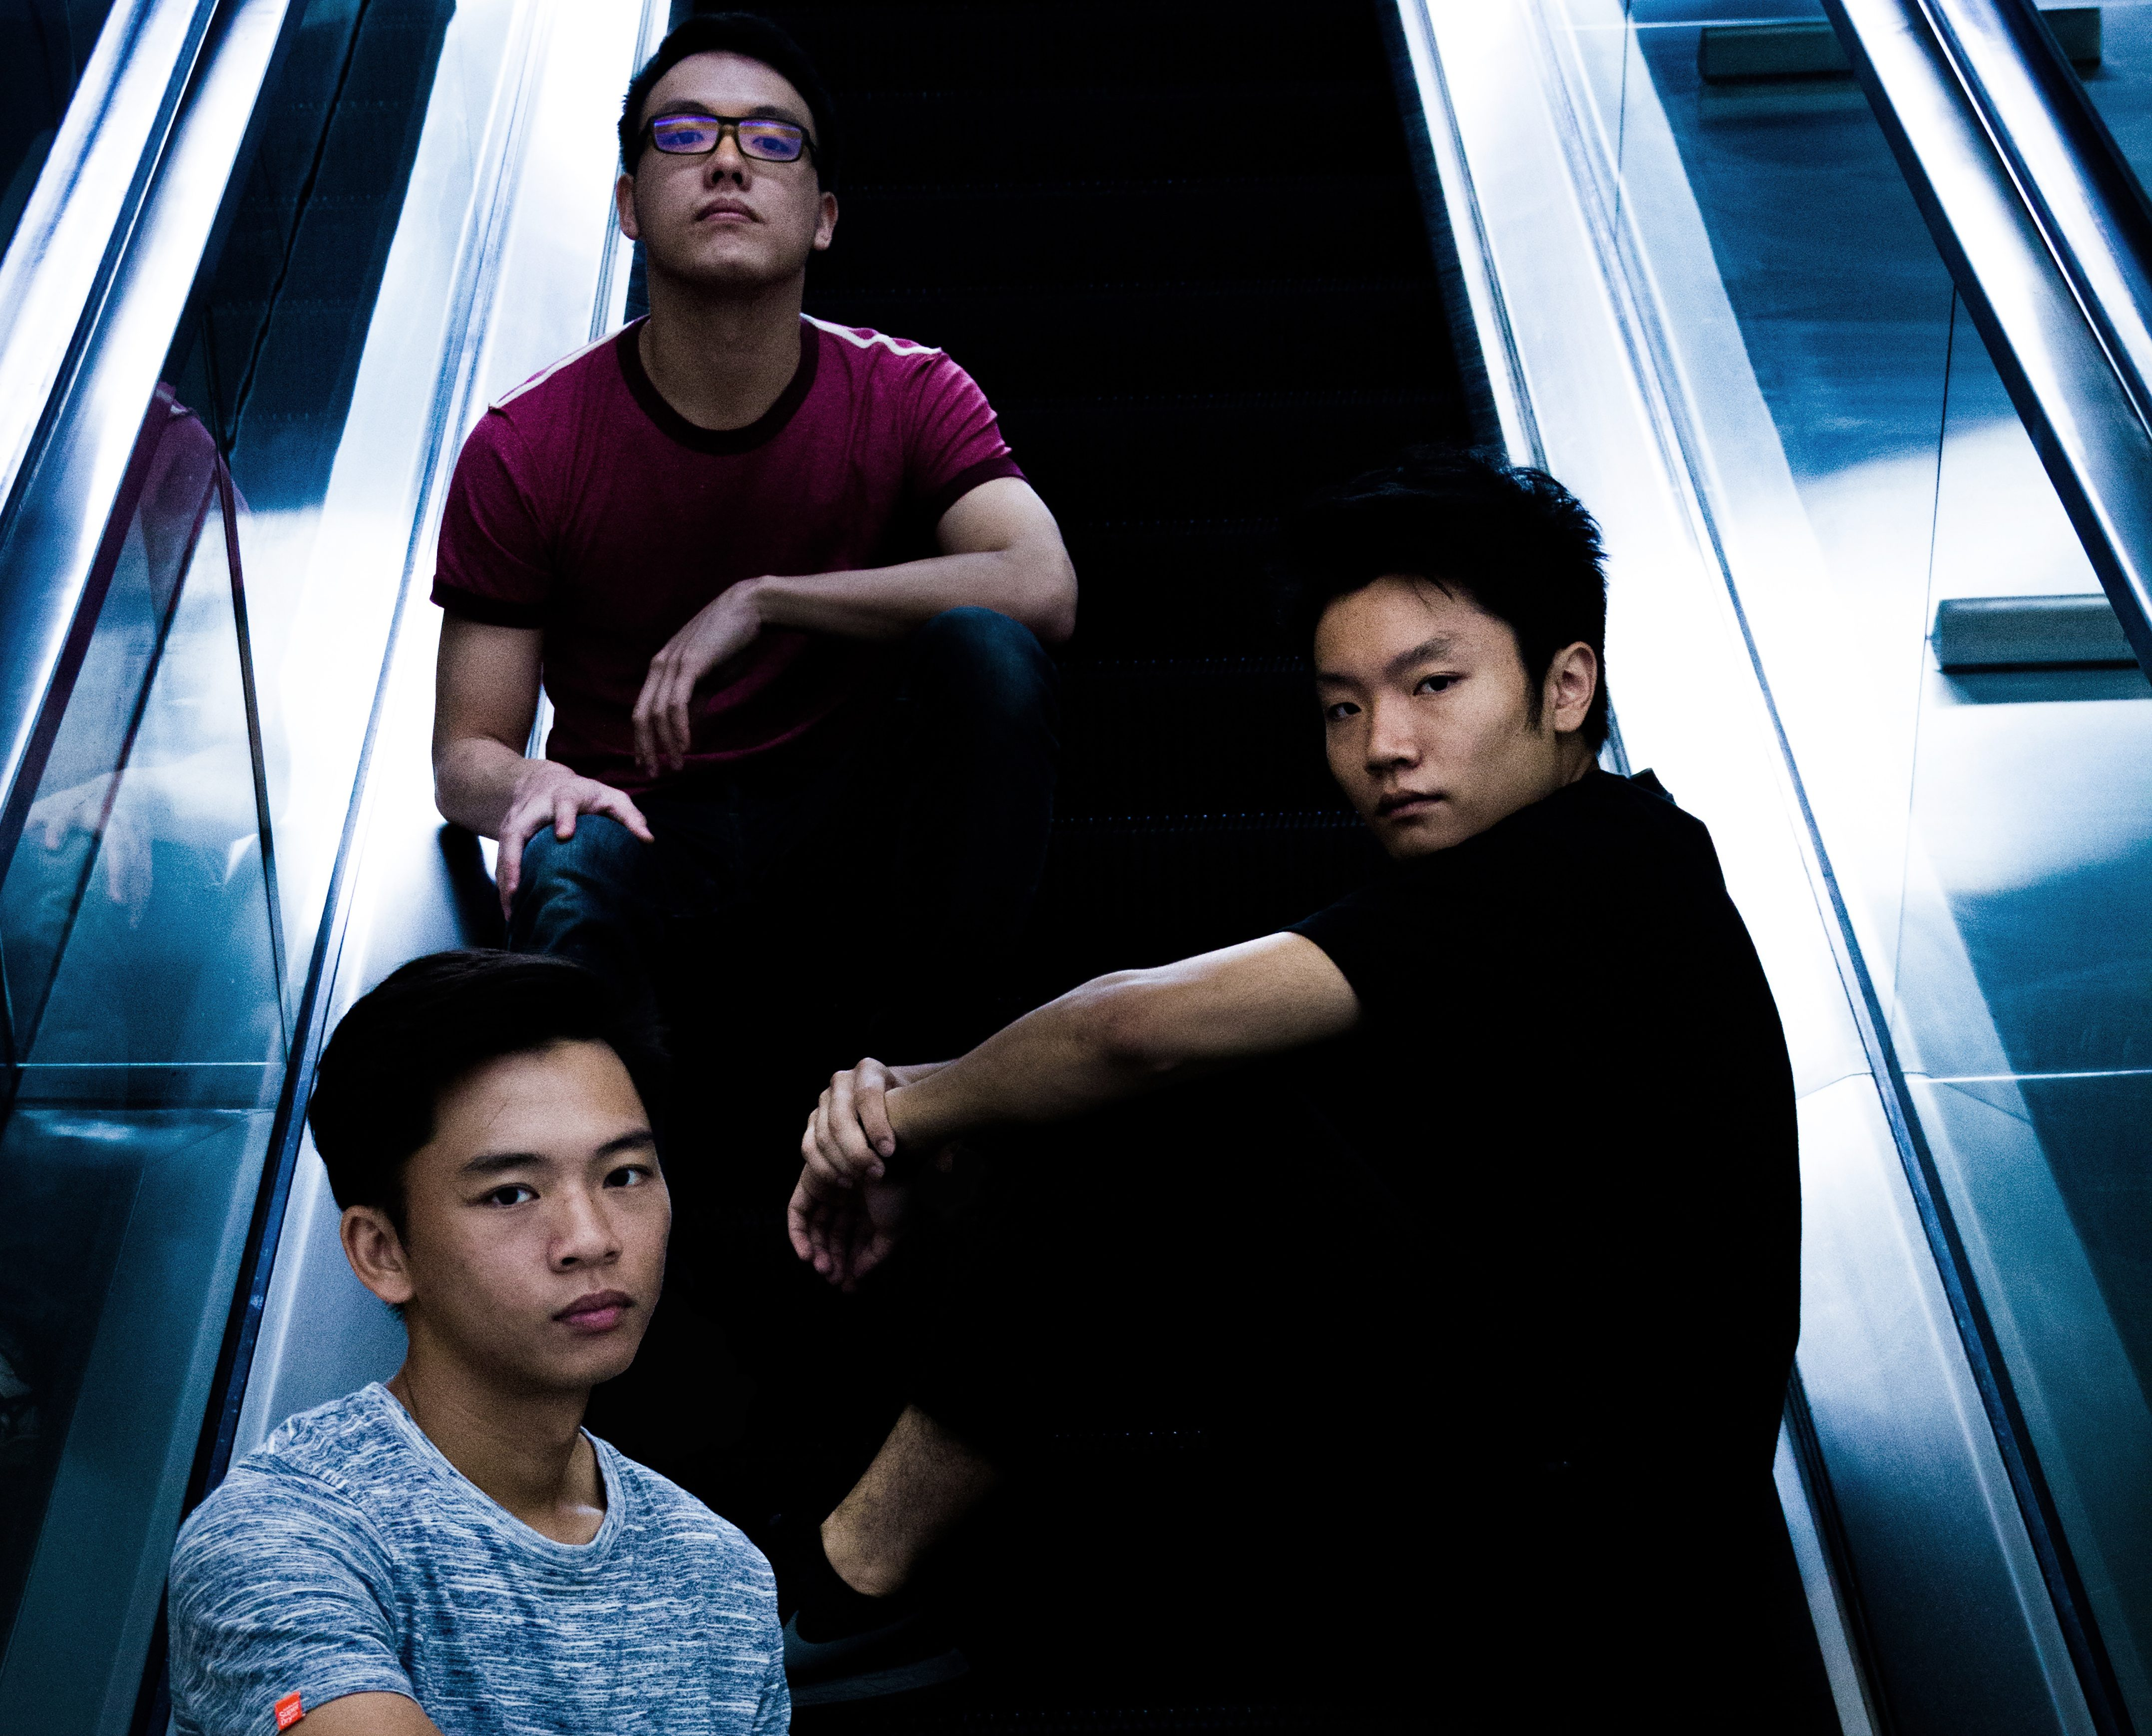 Singapore Based Sine Breaks Down Stereotypes About Rock